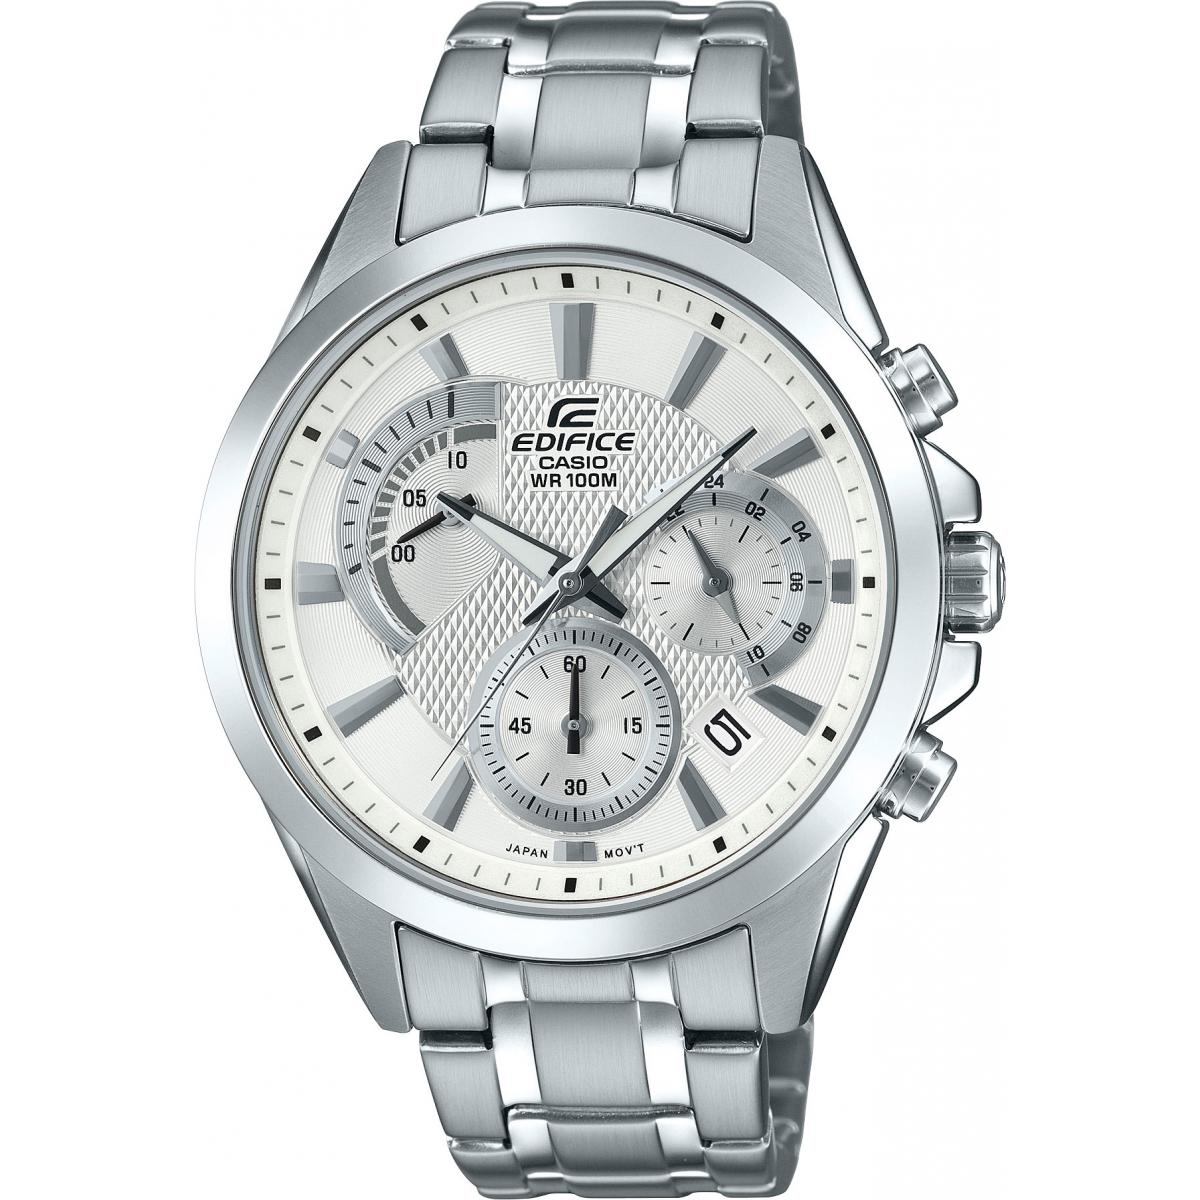 Montre Casio EDIFICE EFV-580D-7AVUEF - Montre EDIFICE Acier Homme